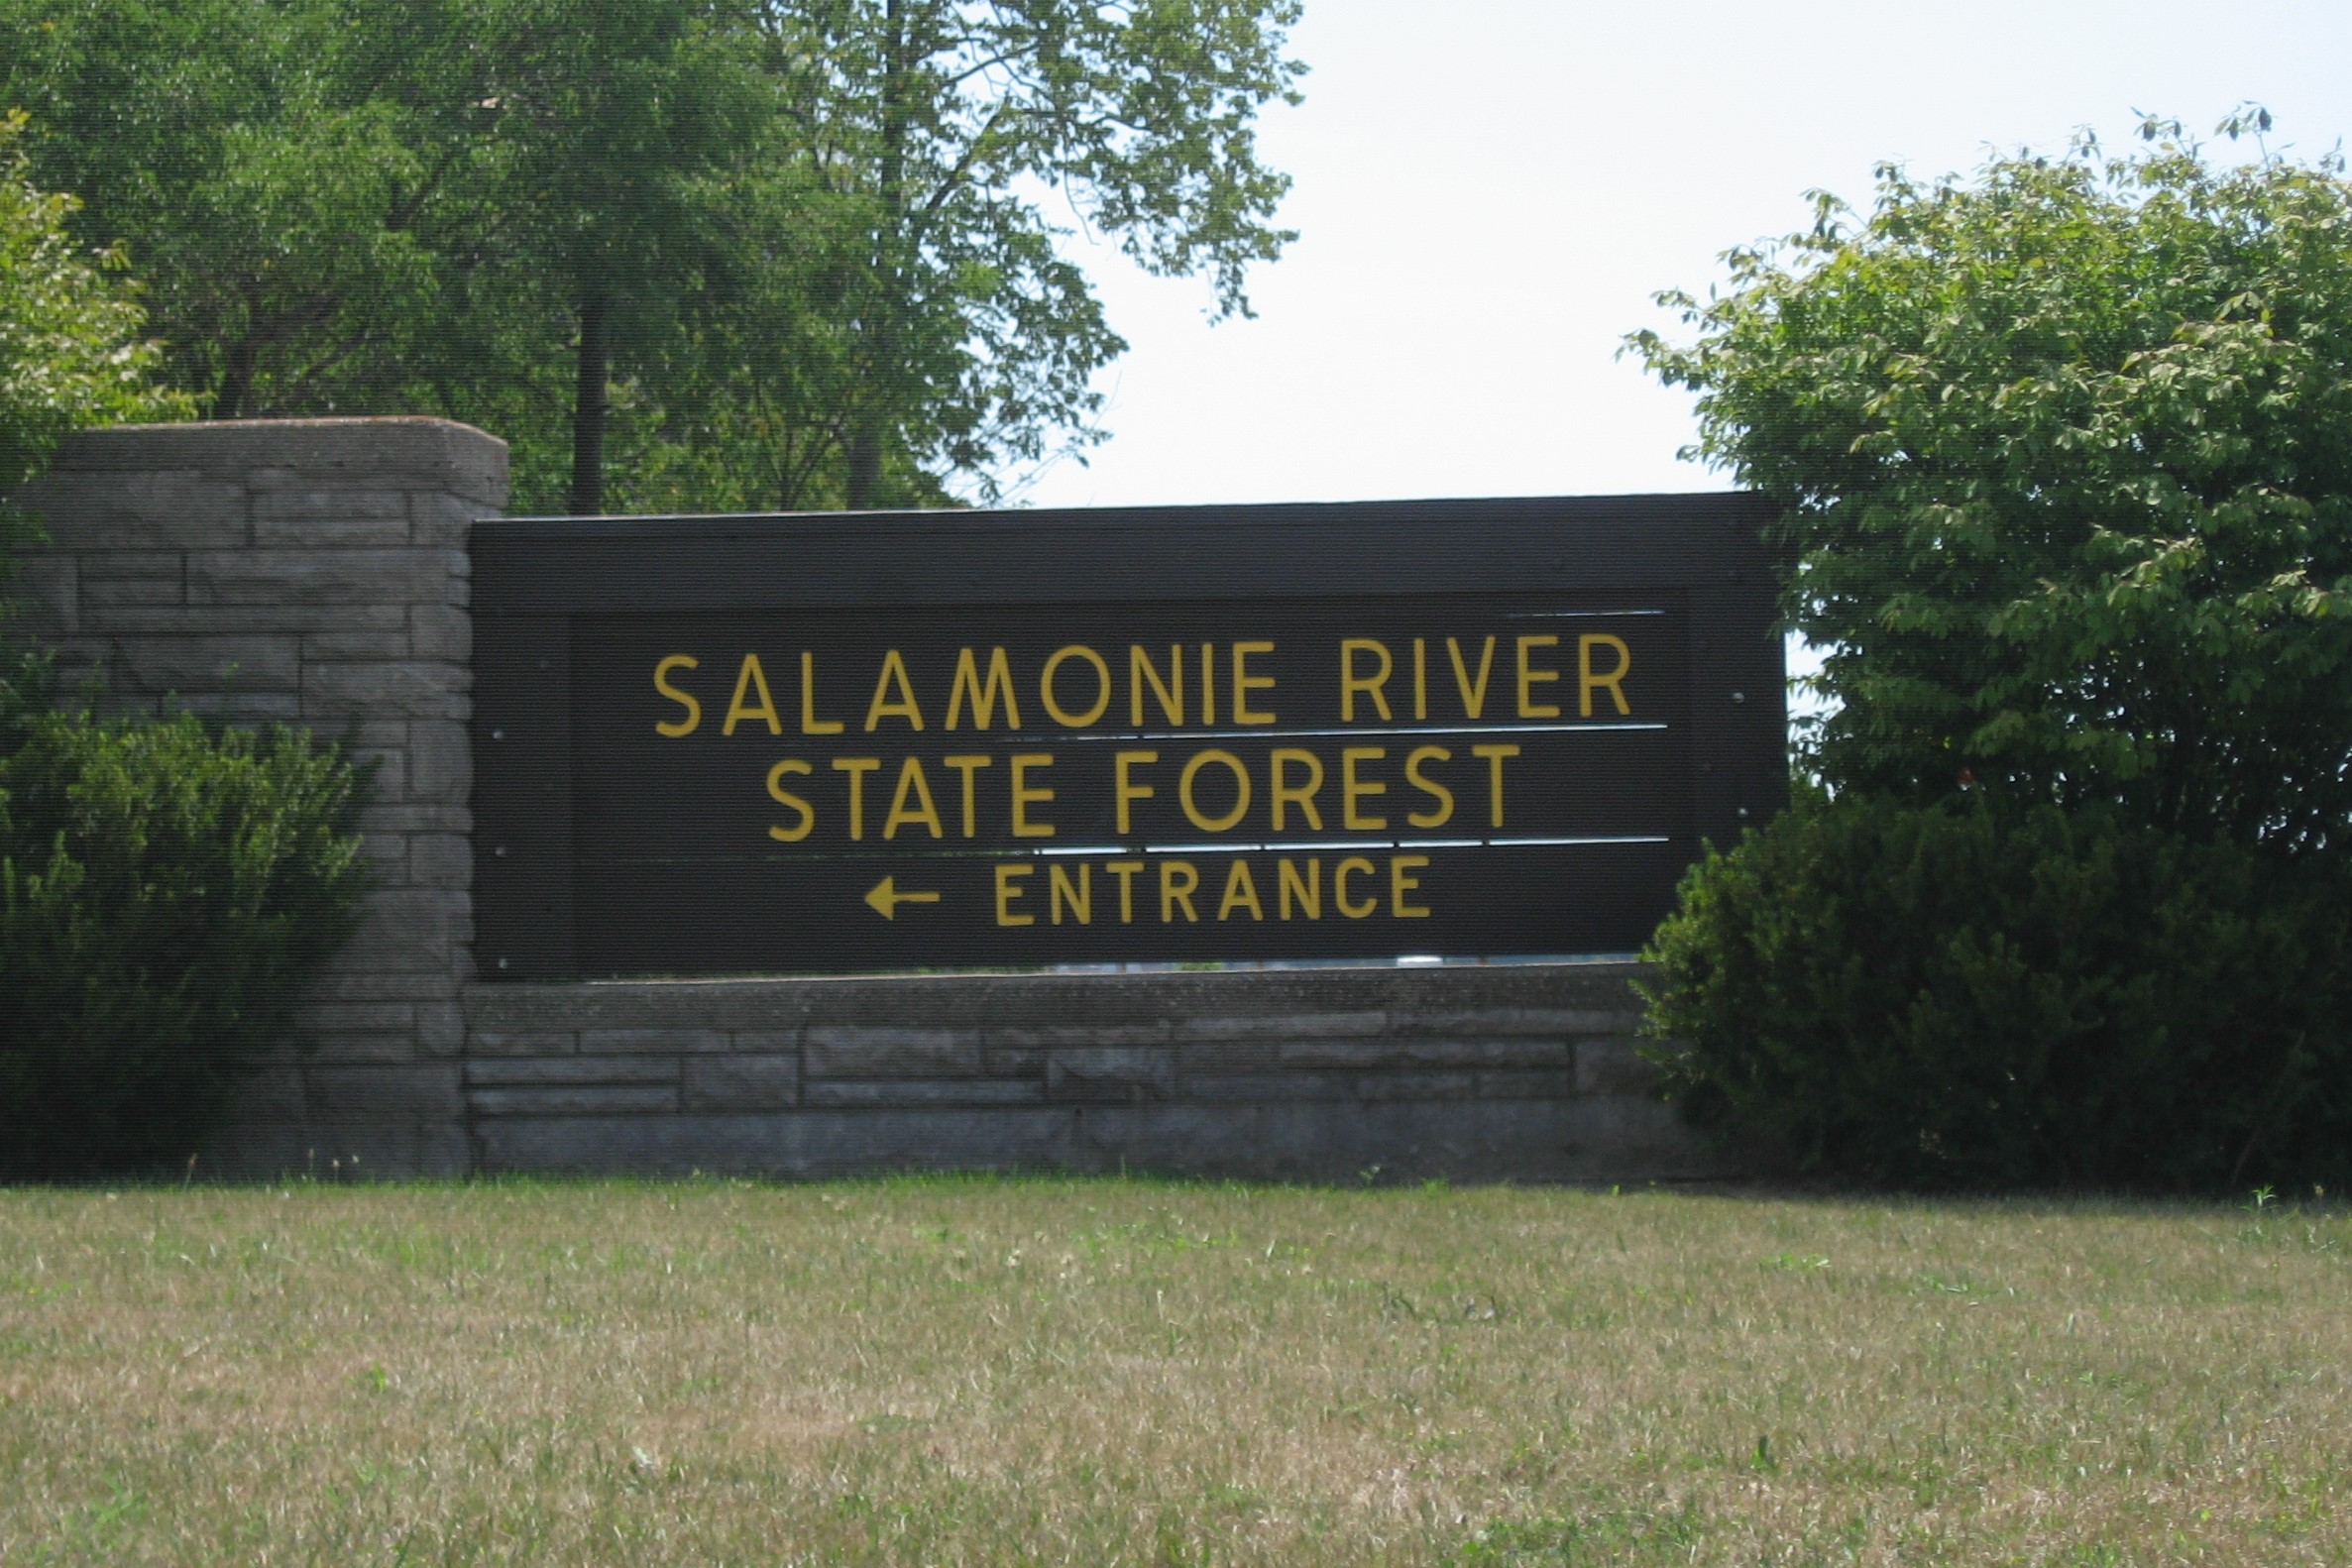 A sign for Salamonie River State Forest in Wabash County.